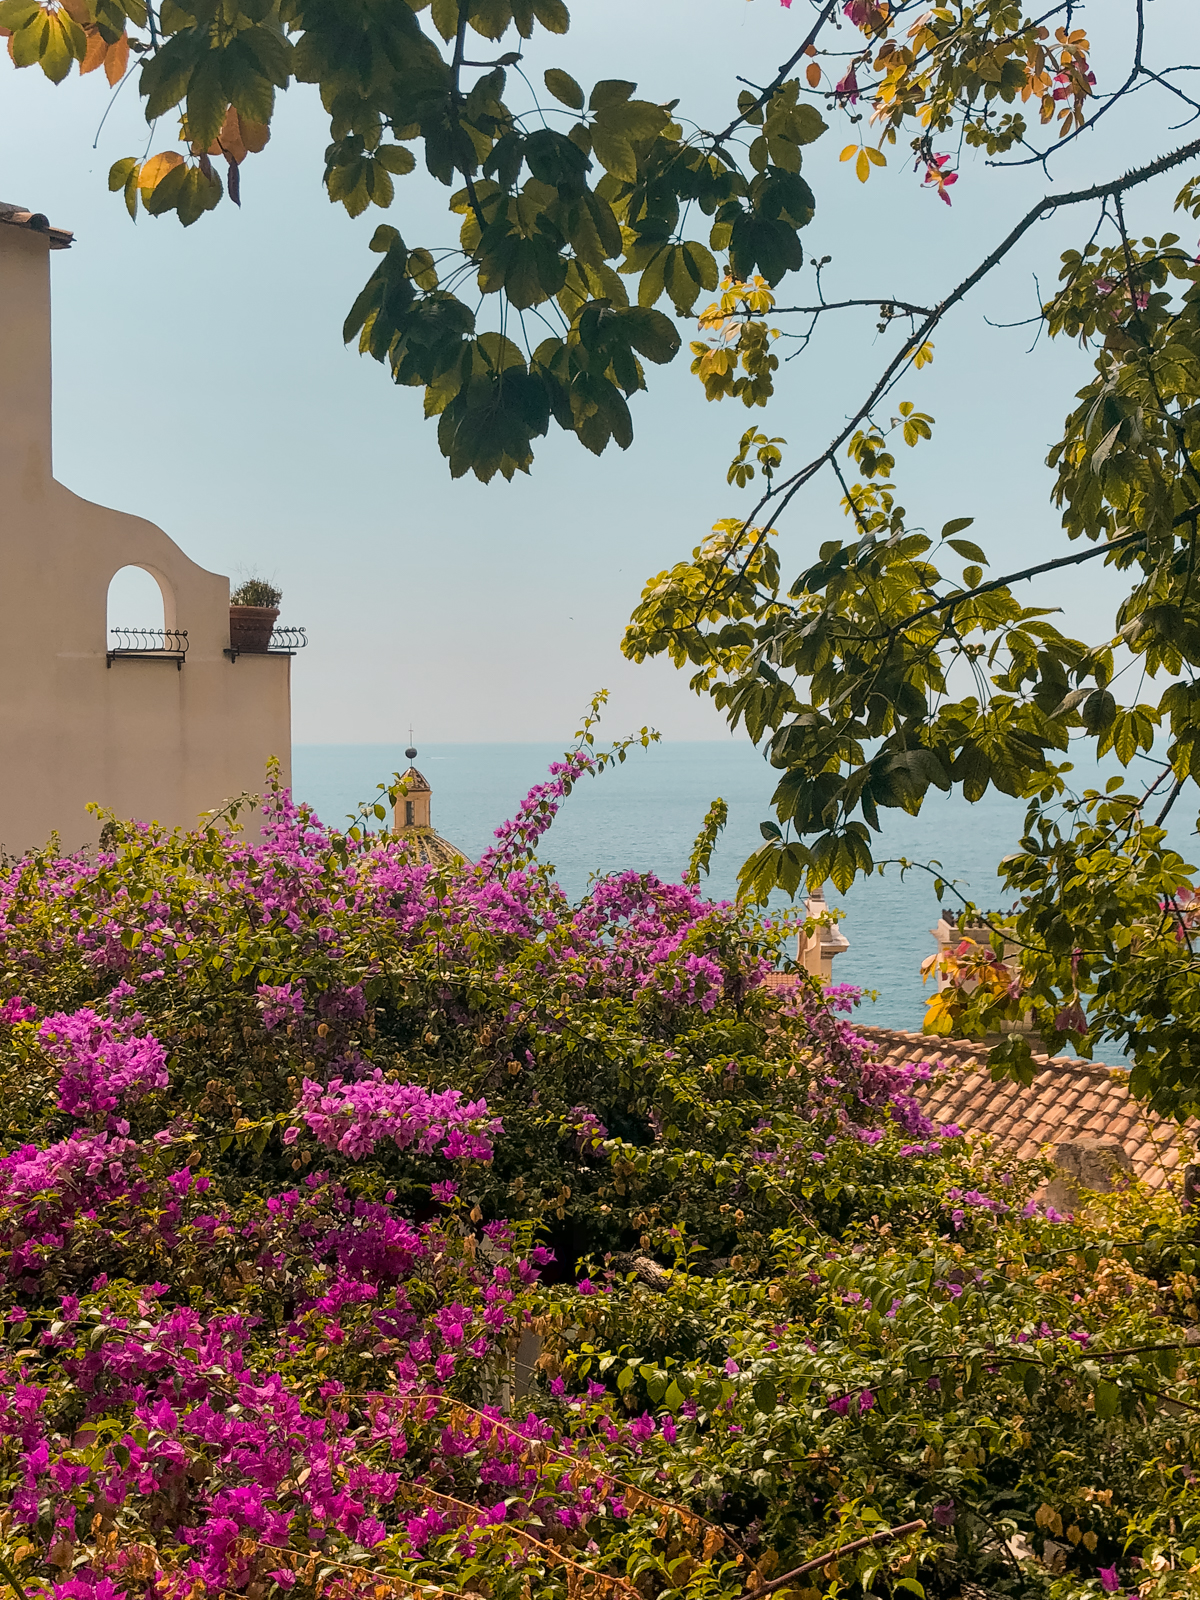 bougainvillea, greenery, and large buildings in Positano